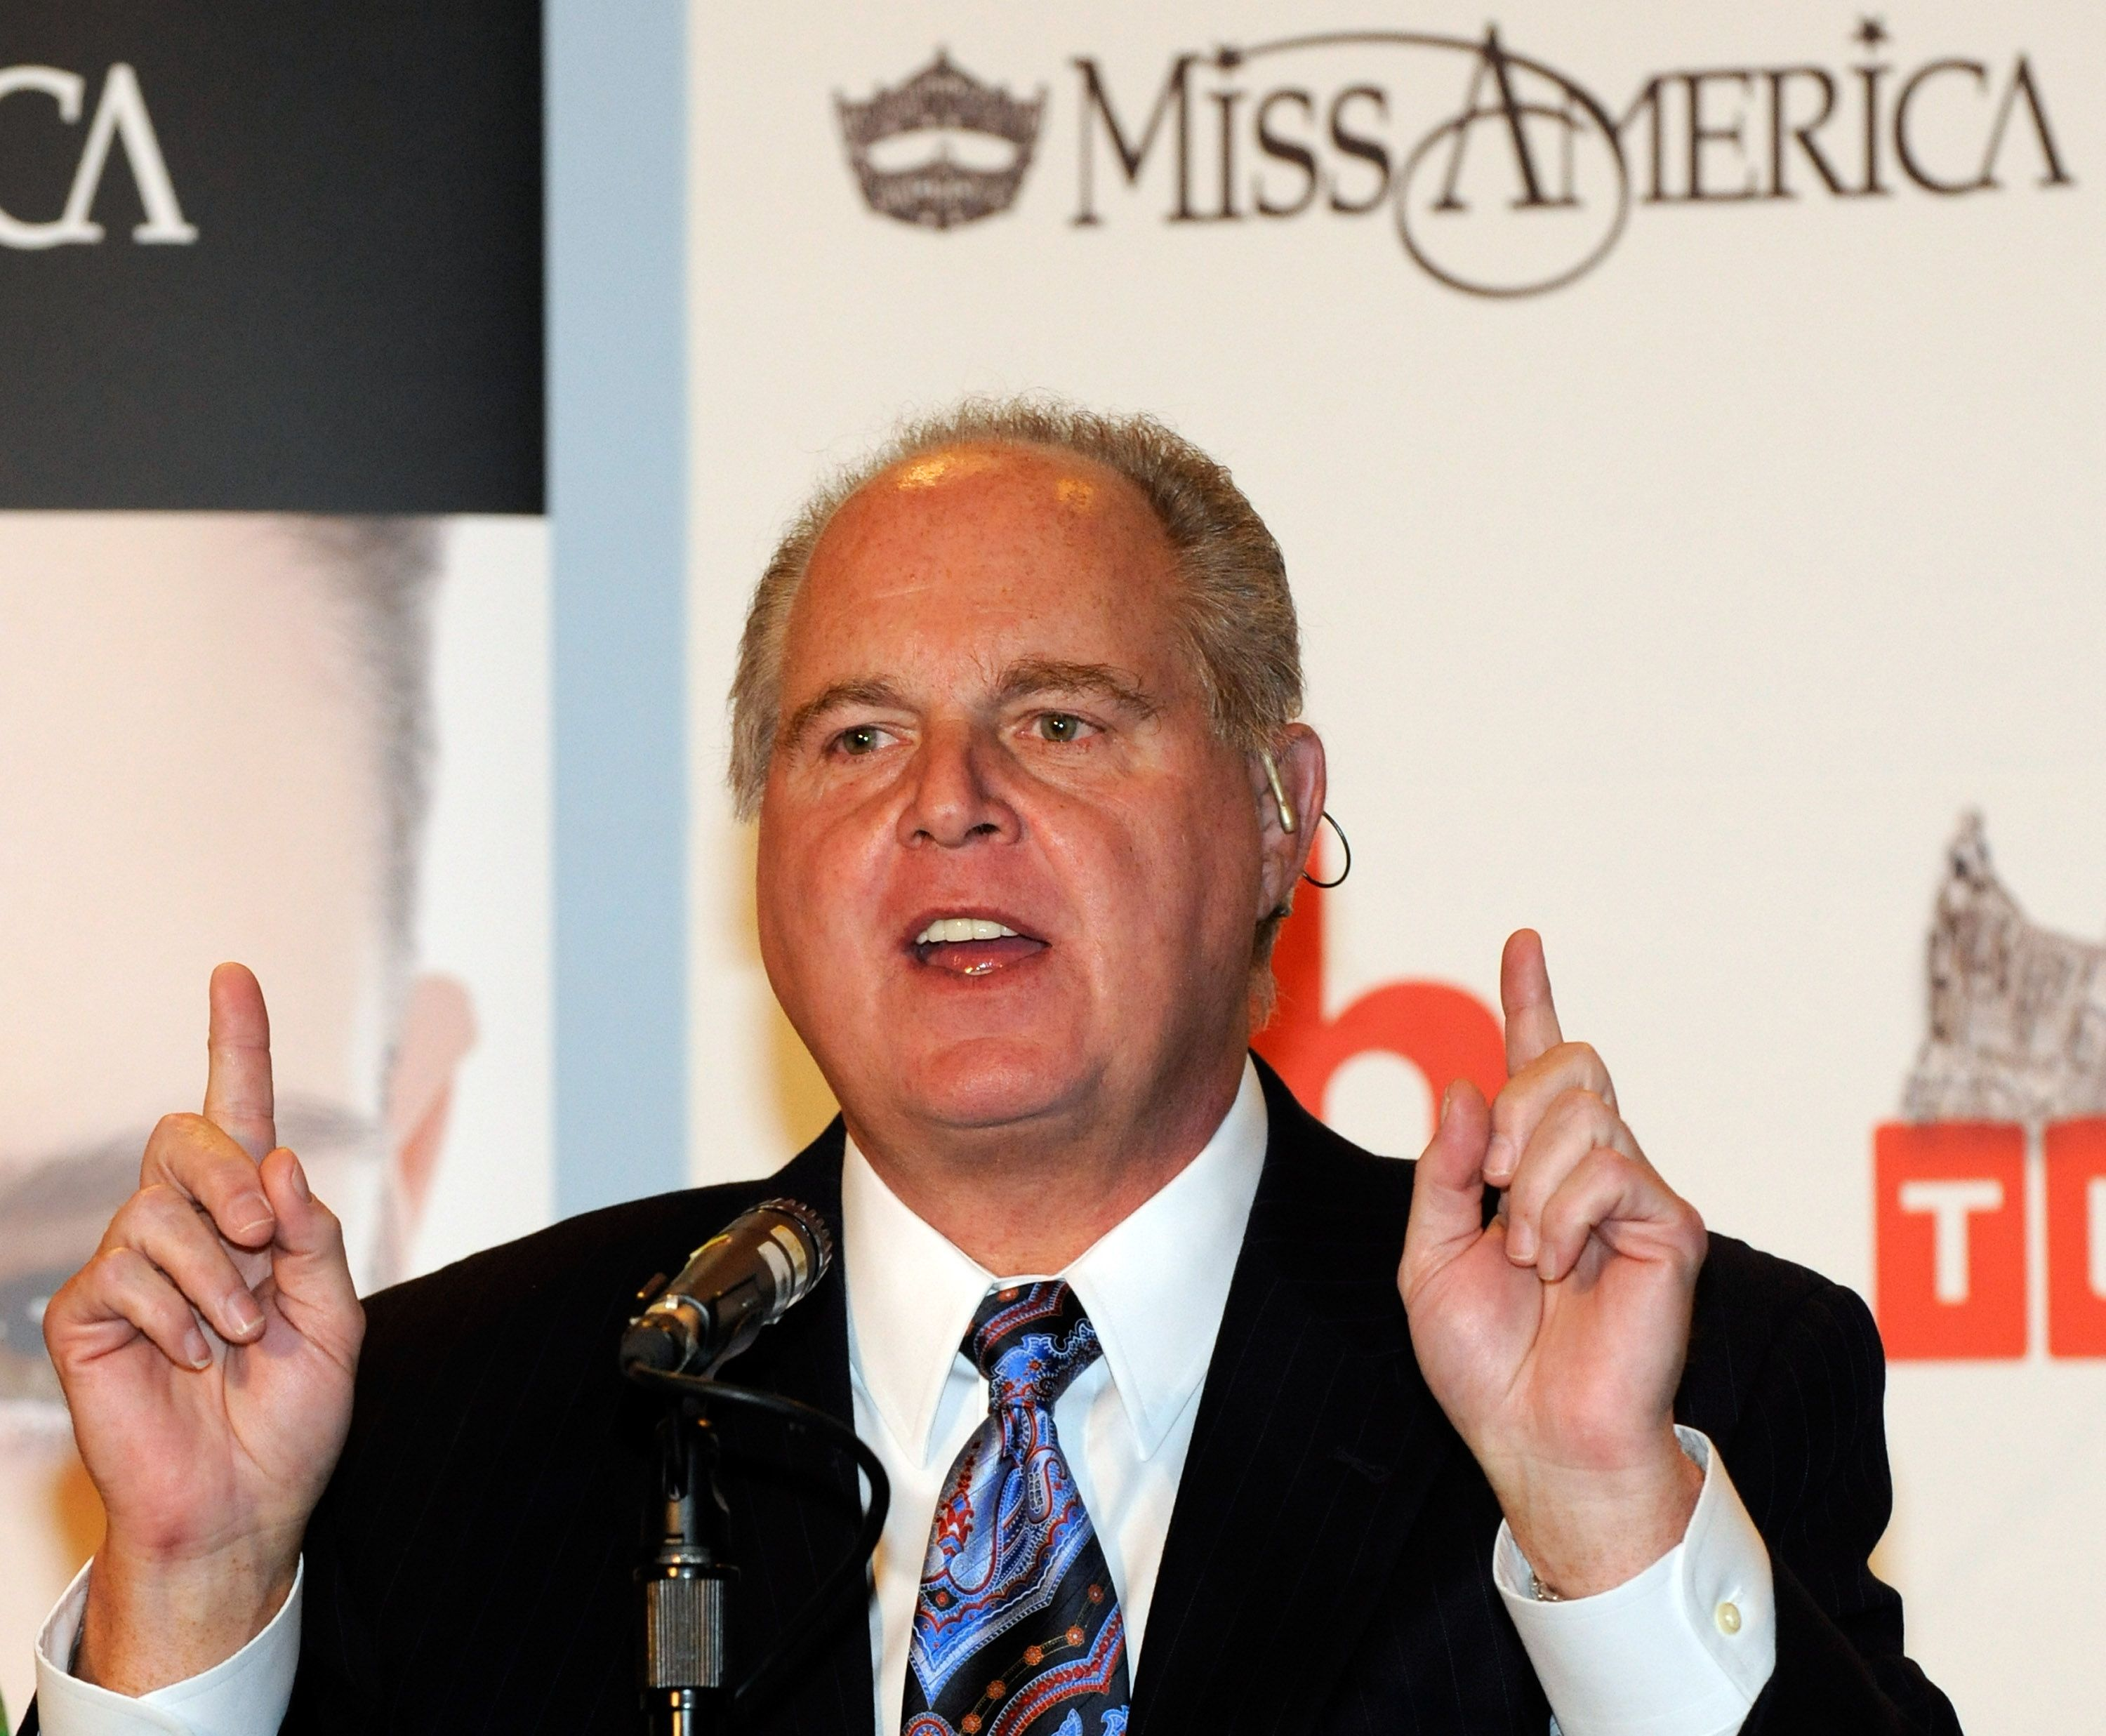 Rush Limbaugh at a news conference for Miss America Pageant judges on January 27, 2010, in Las Vegas, Nevada | Photo: Ethan Miller/Getty Images